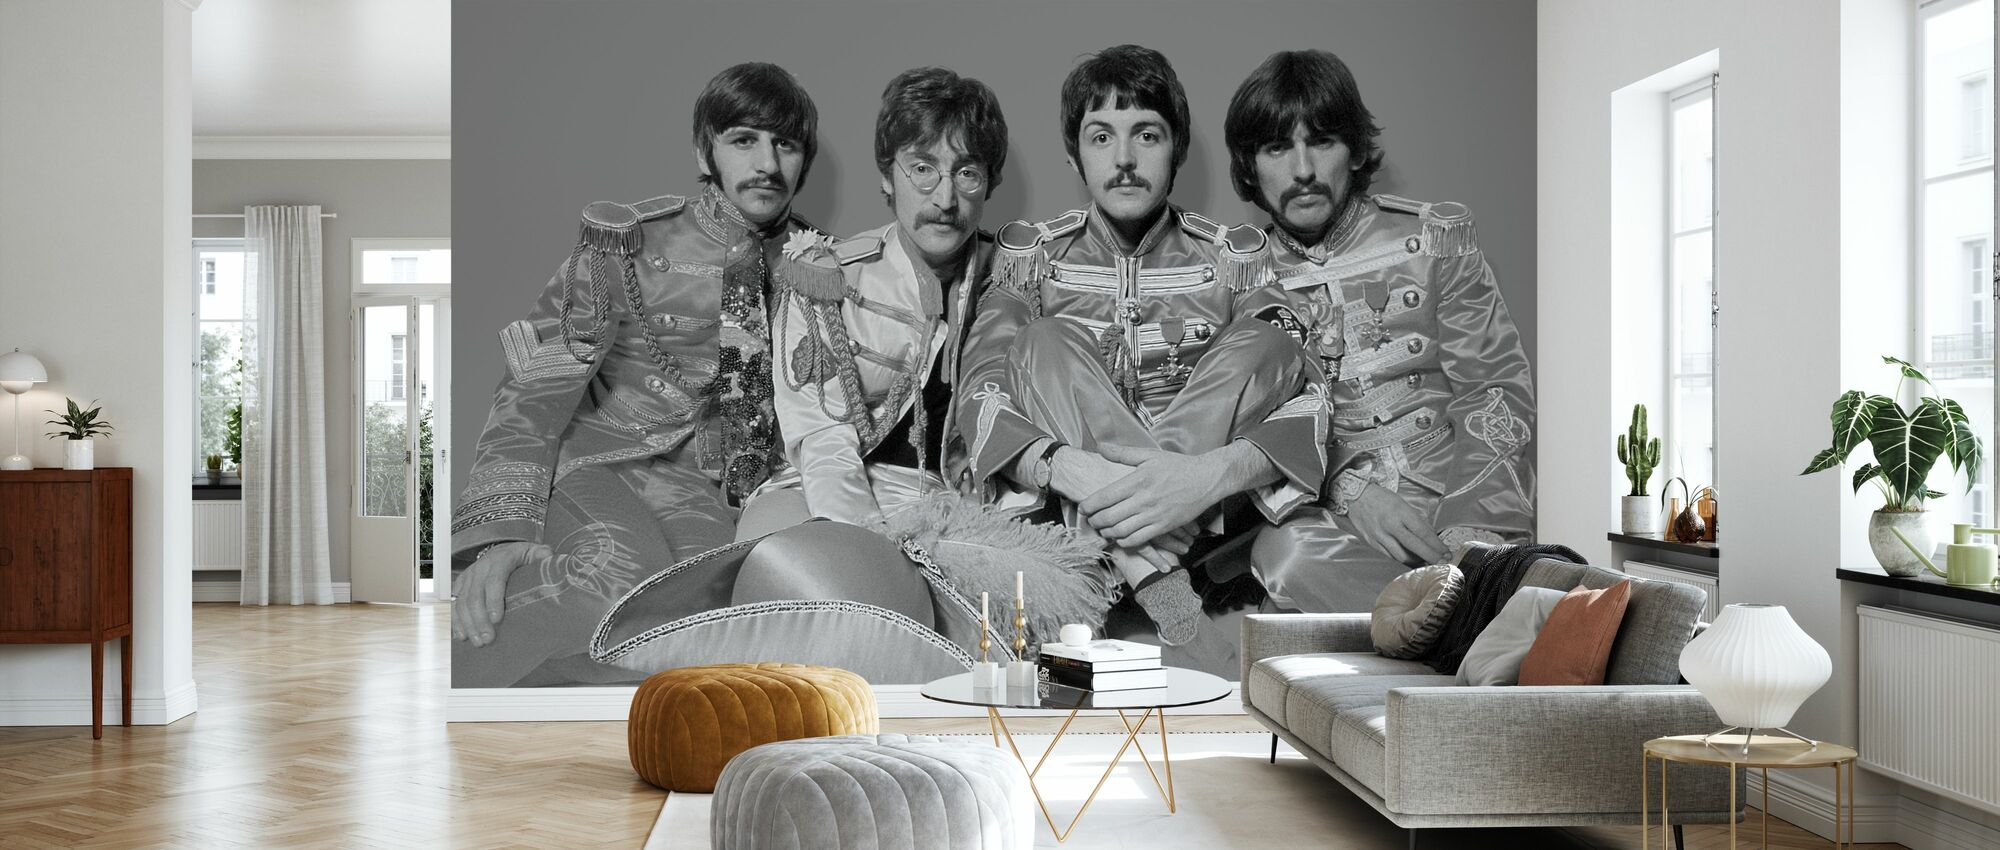 The Beatles - Sgt Peppers Lonely Hearts Club Band Grau - Tapete - Wohnzimmer